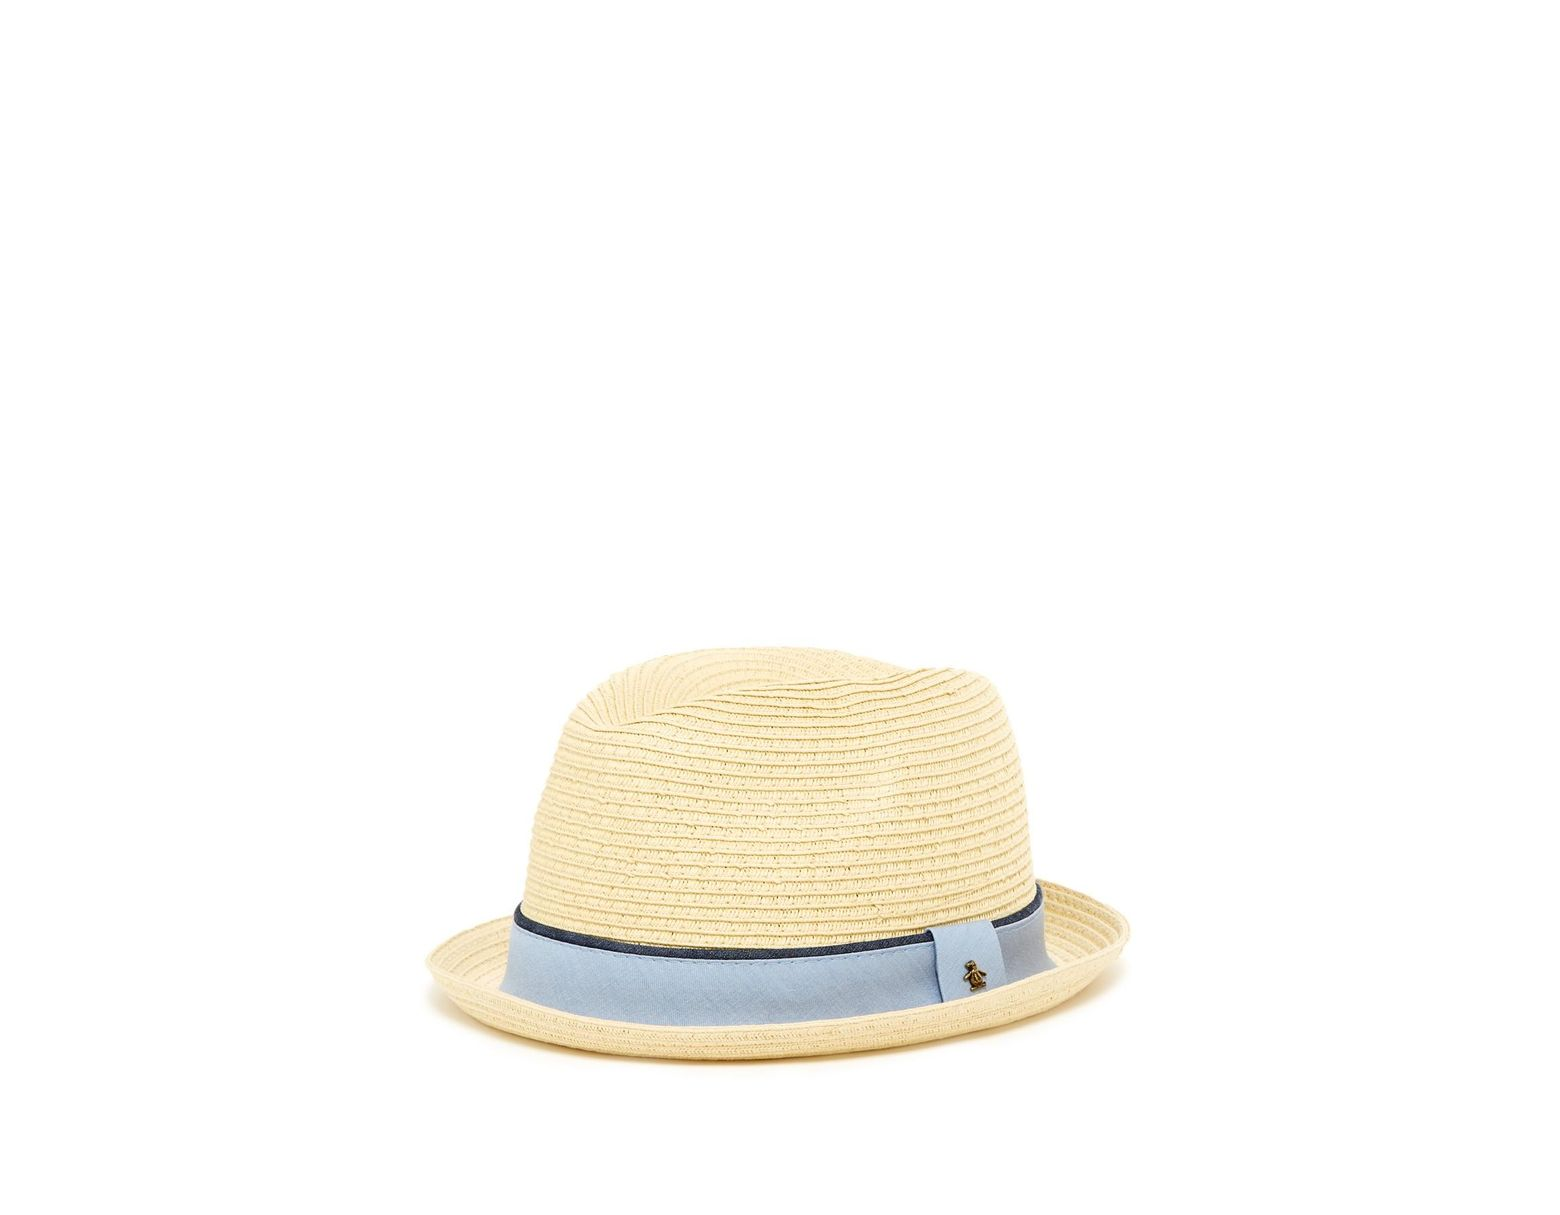 3c800461da839 Lyst - Original Penguin Straw Porkpie Hat in Natural for Men